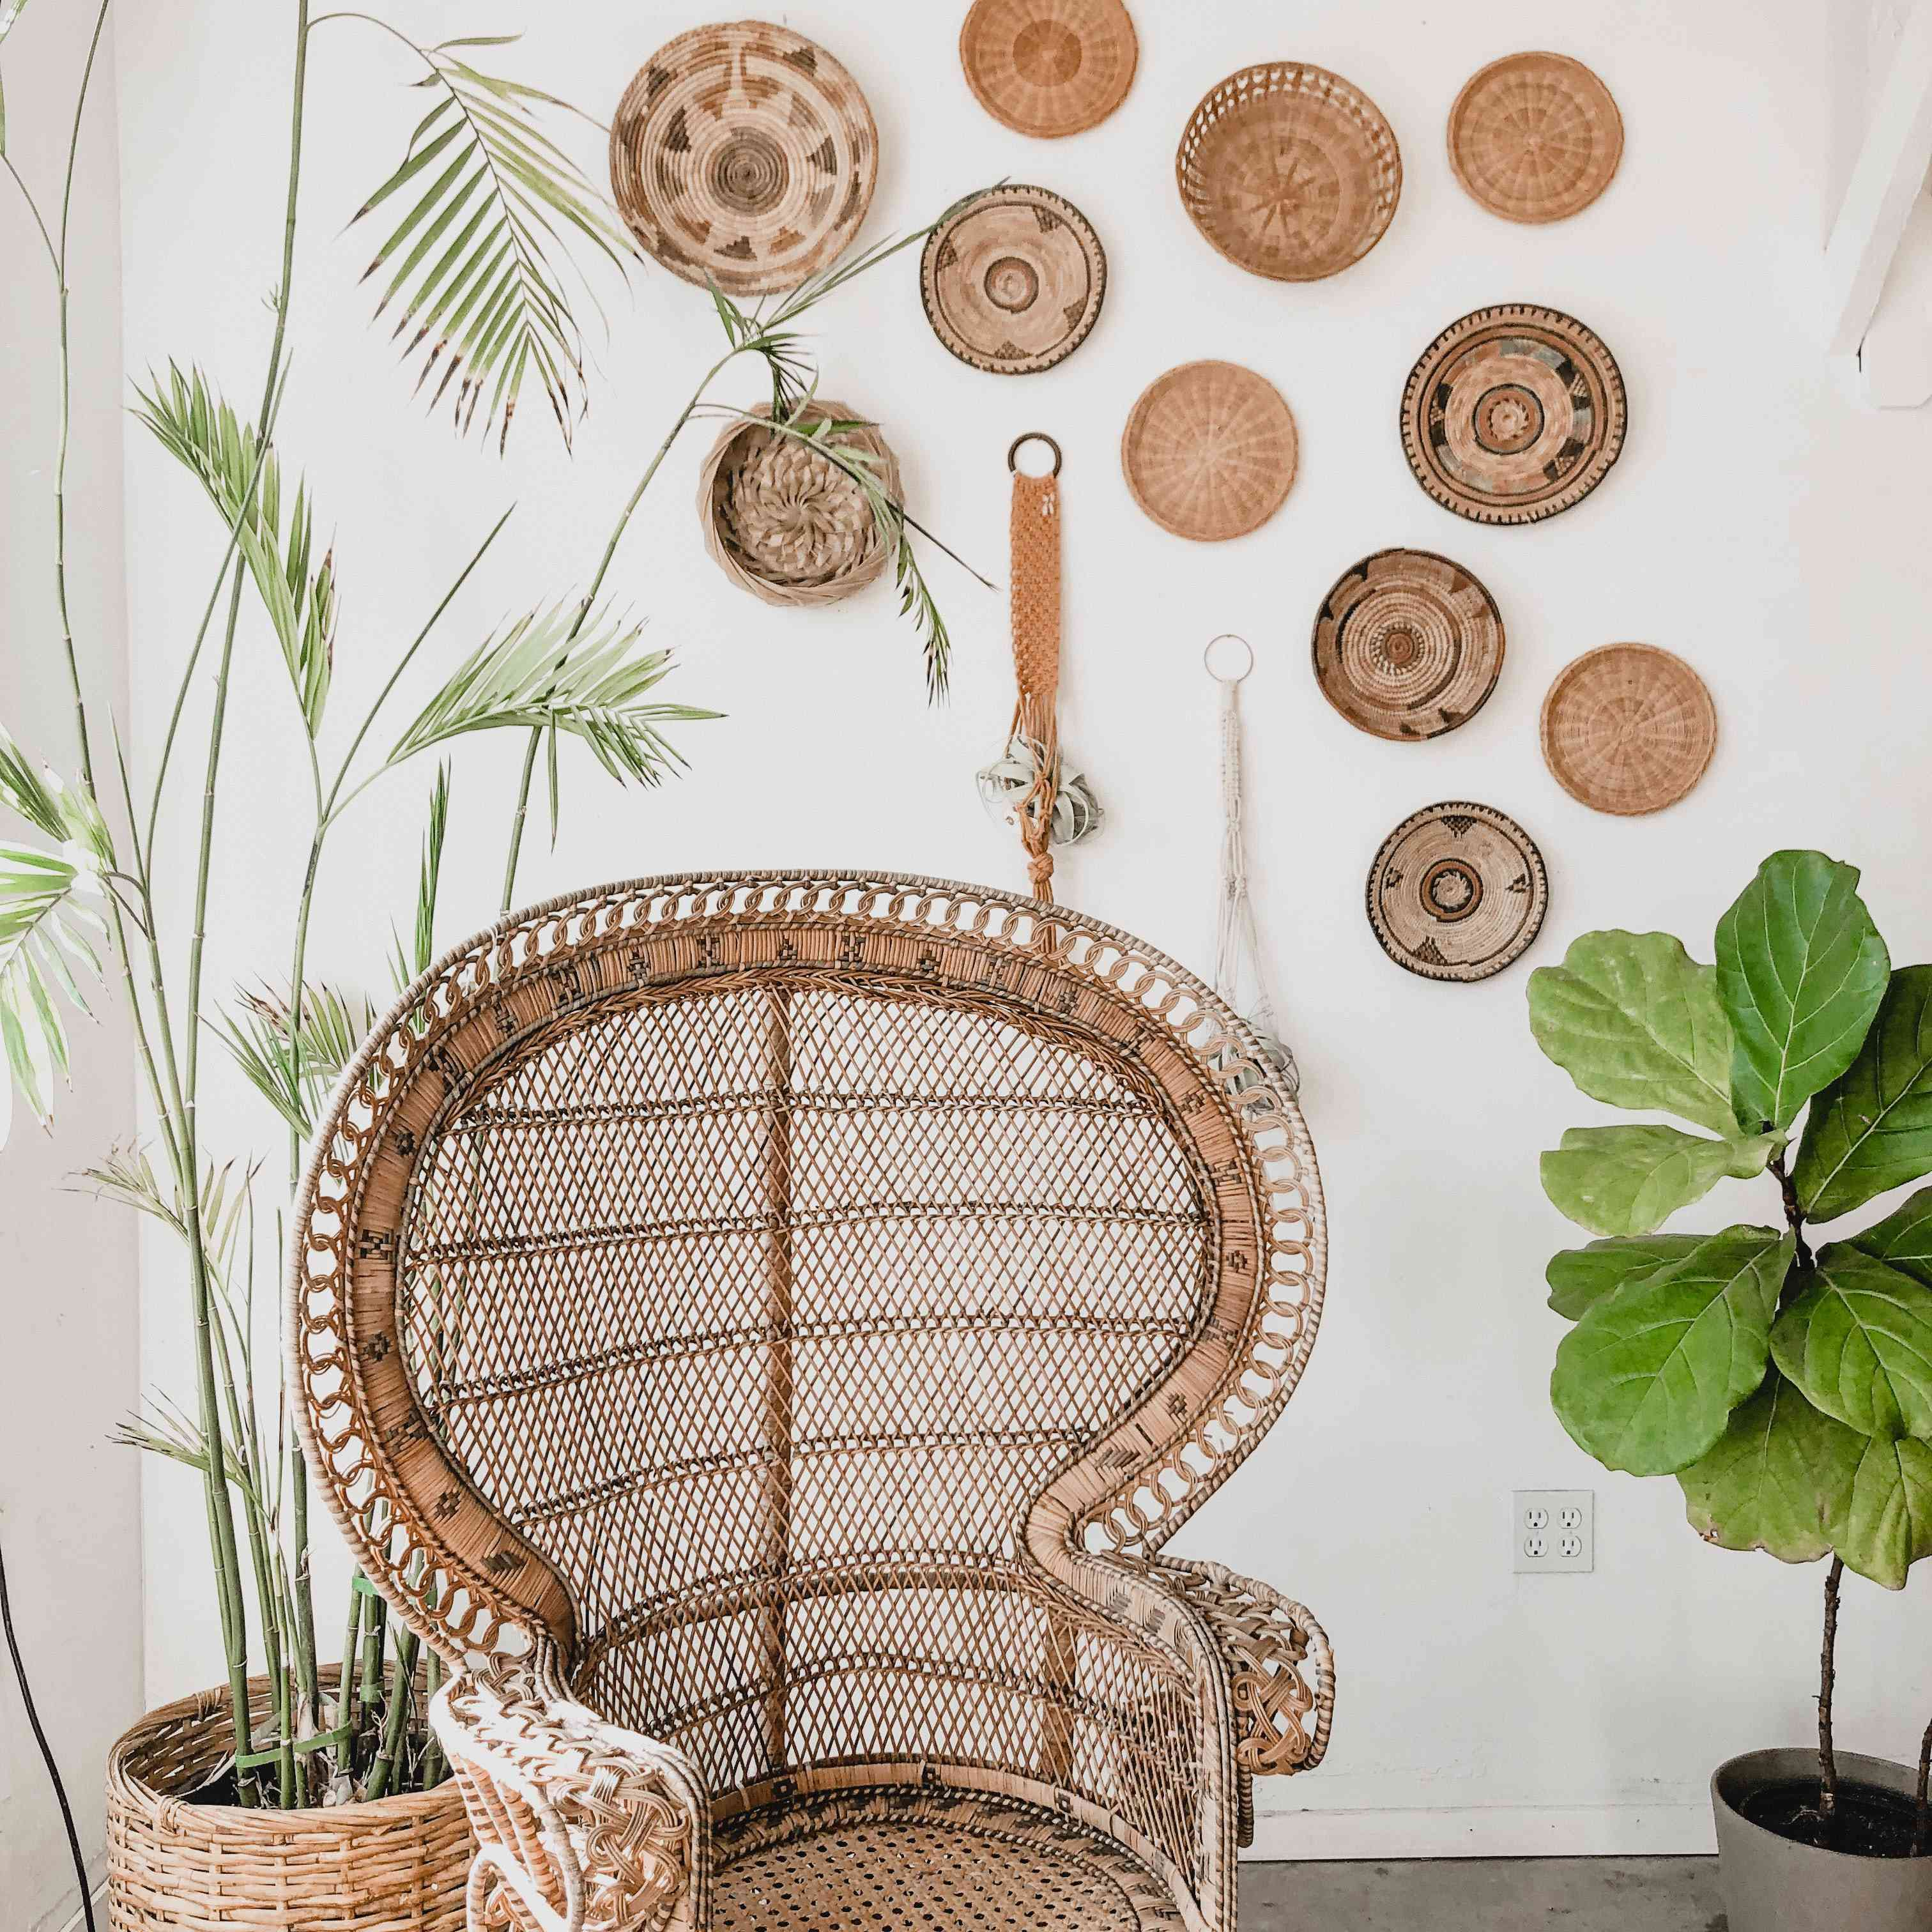 brown wicker peacock chair and other brown decorations with green plants